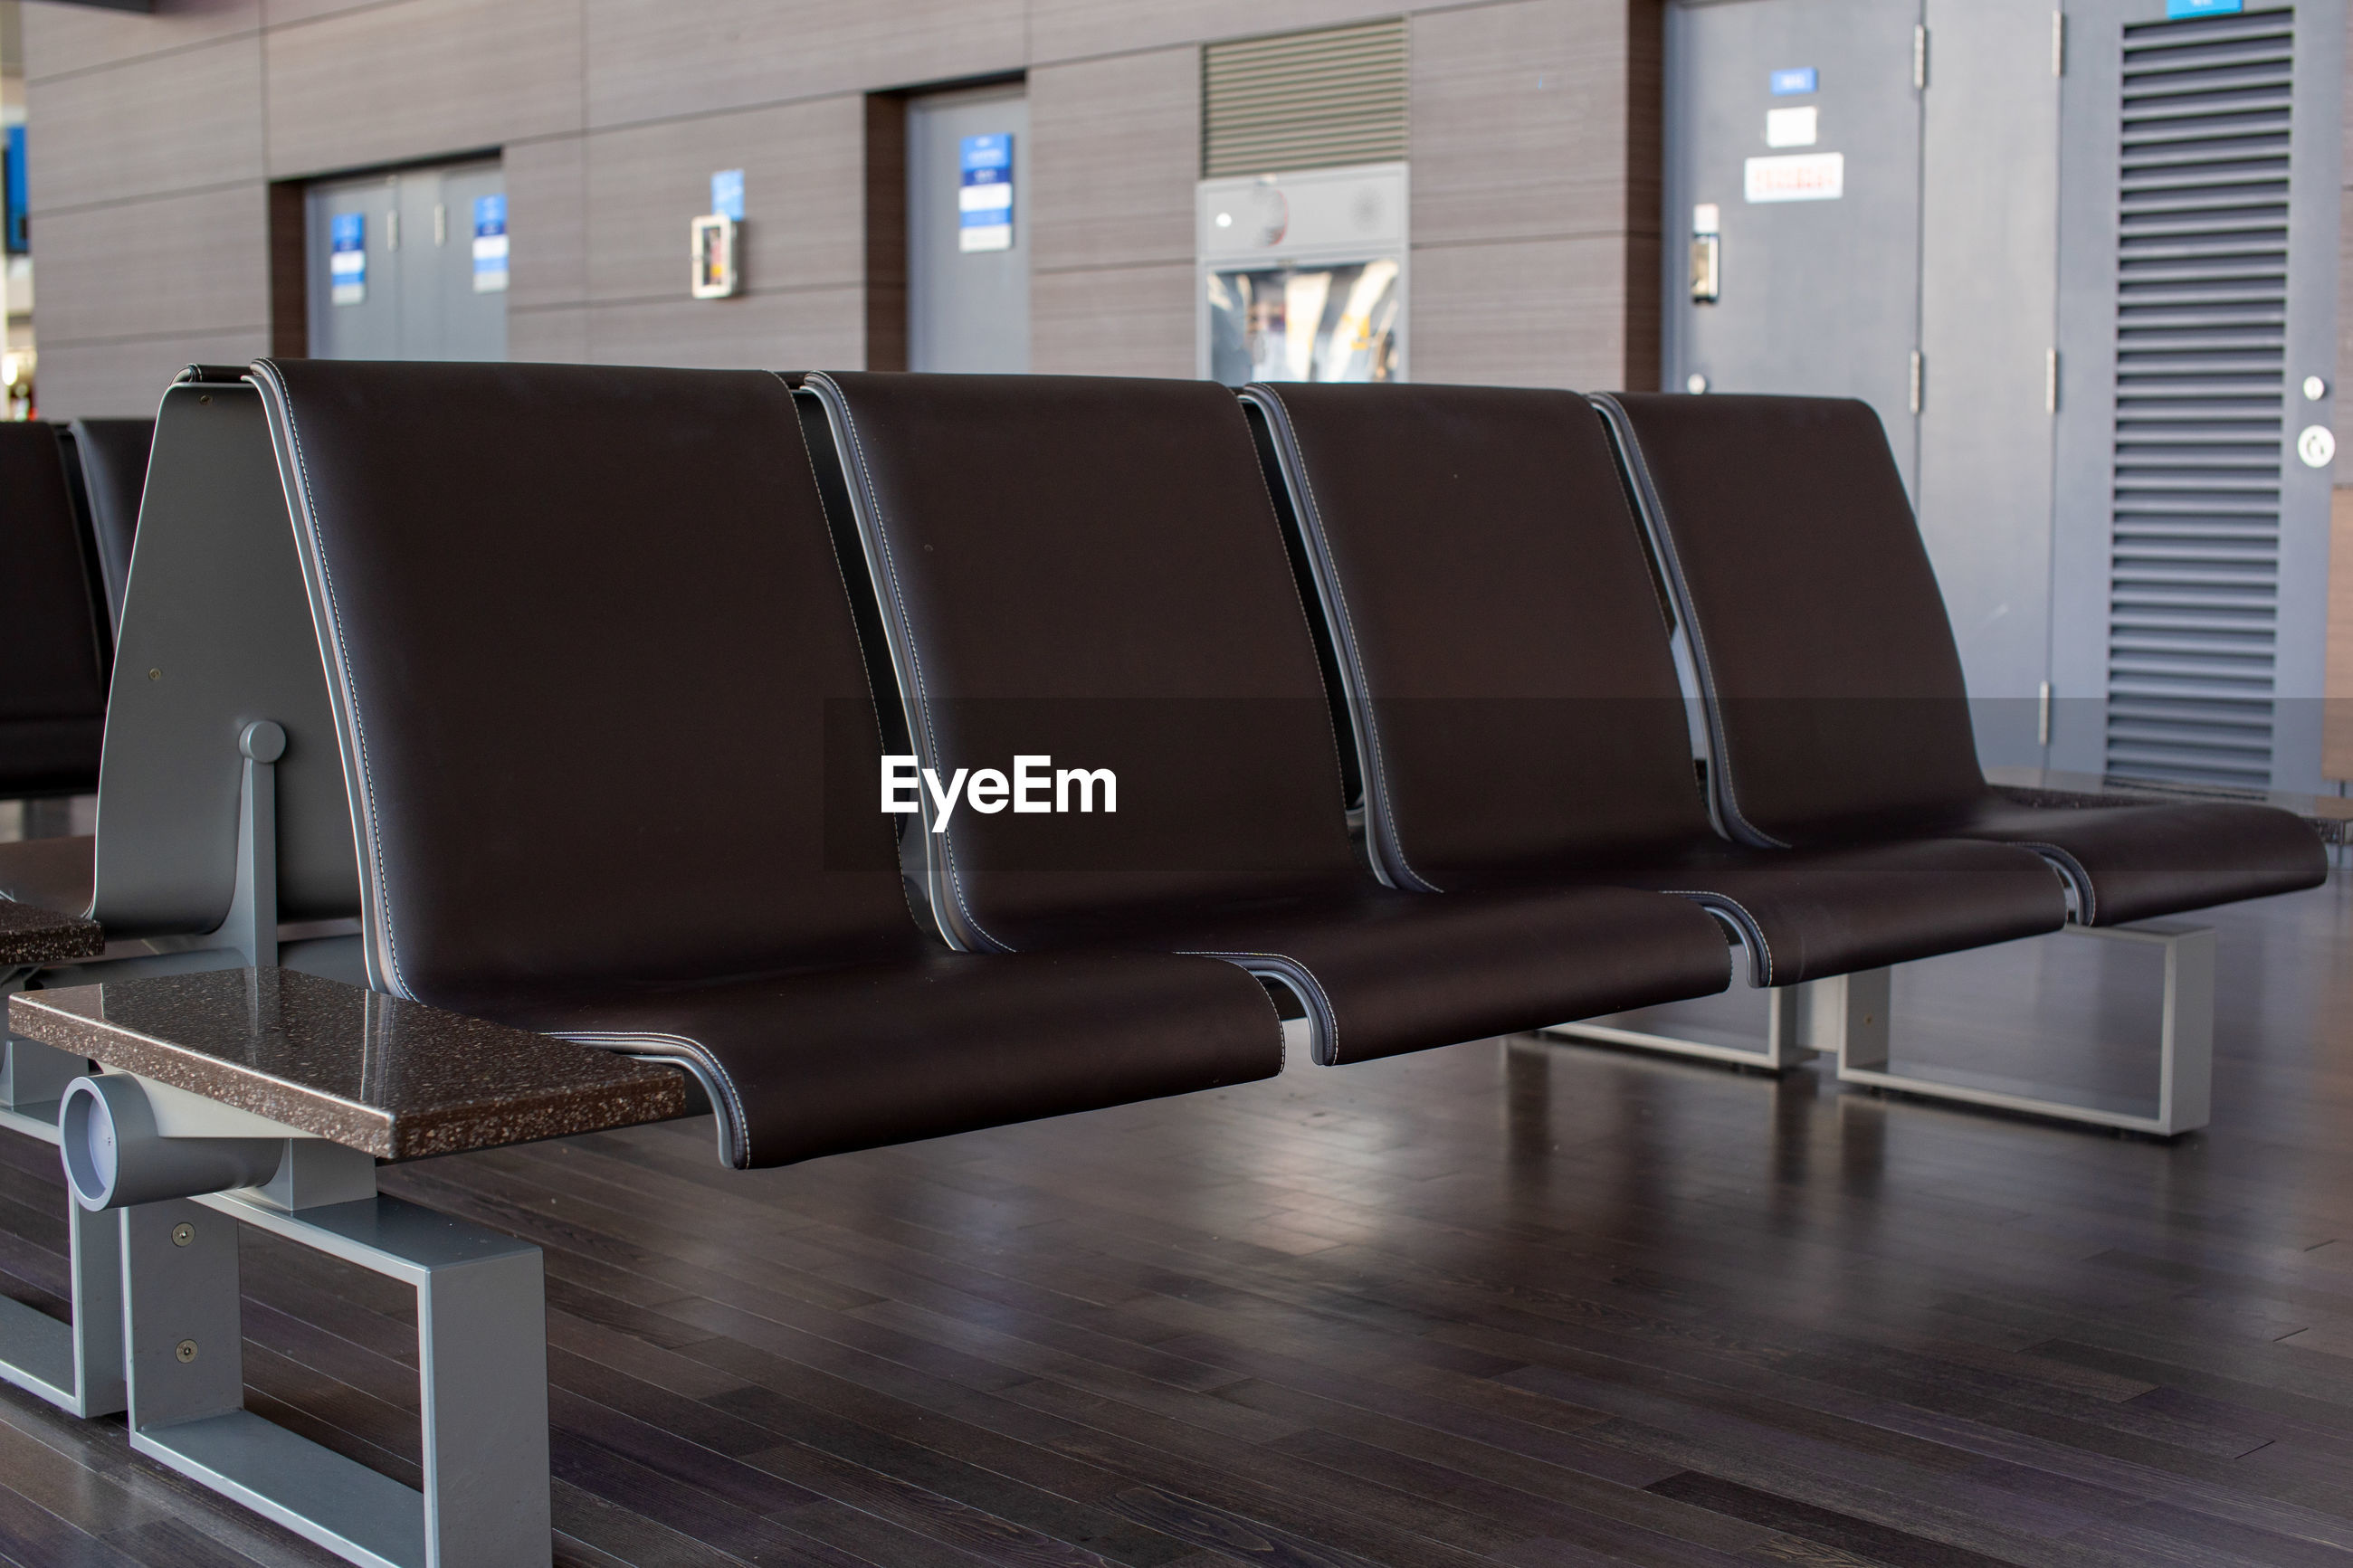 EMPTY CHAIRS AT AIRPORT